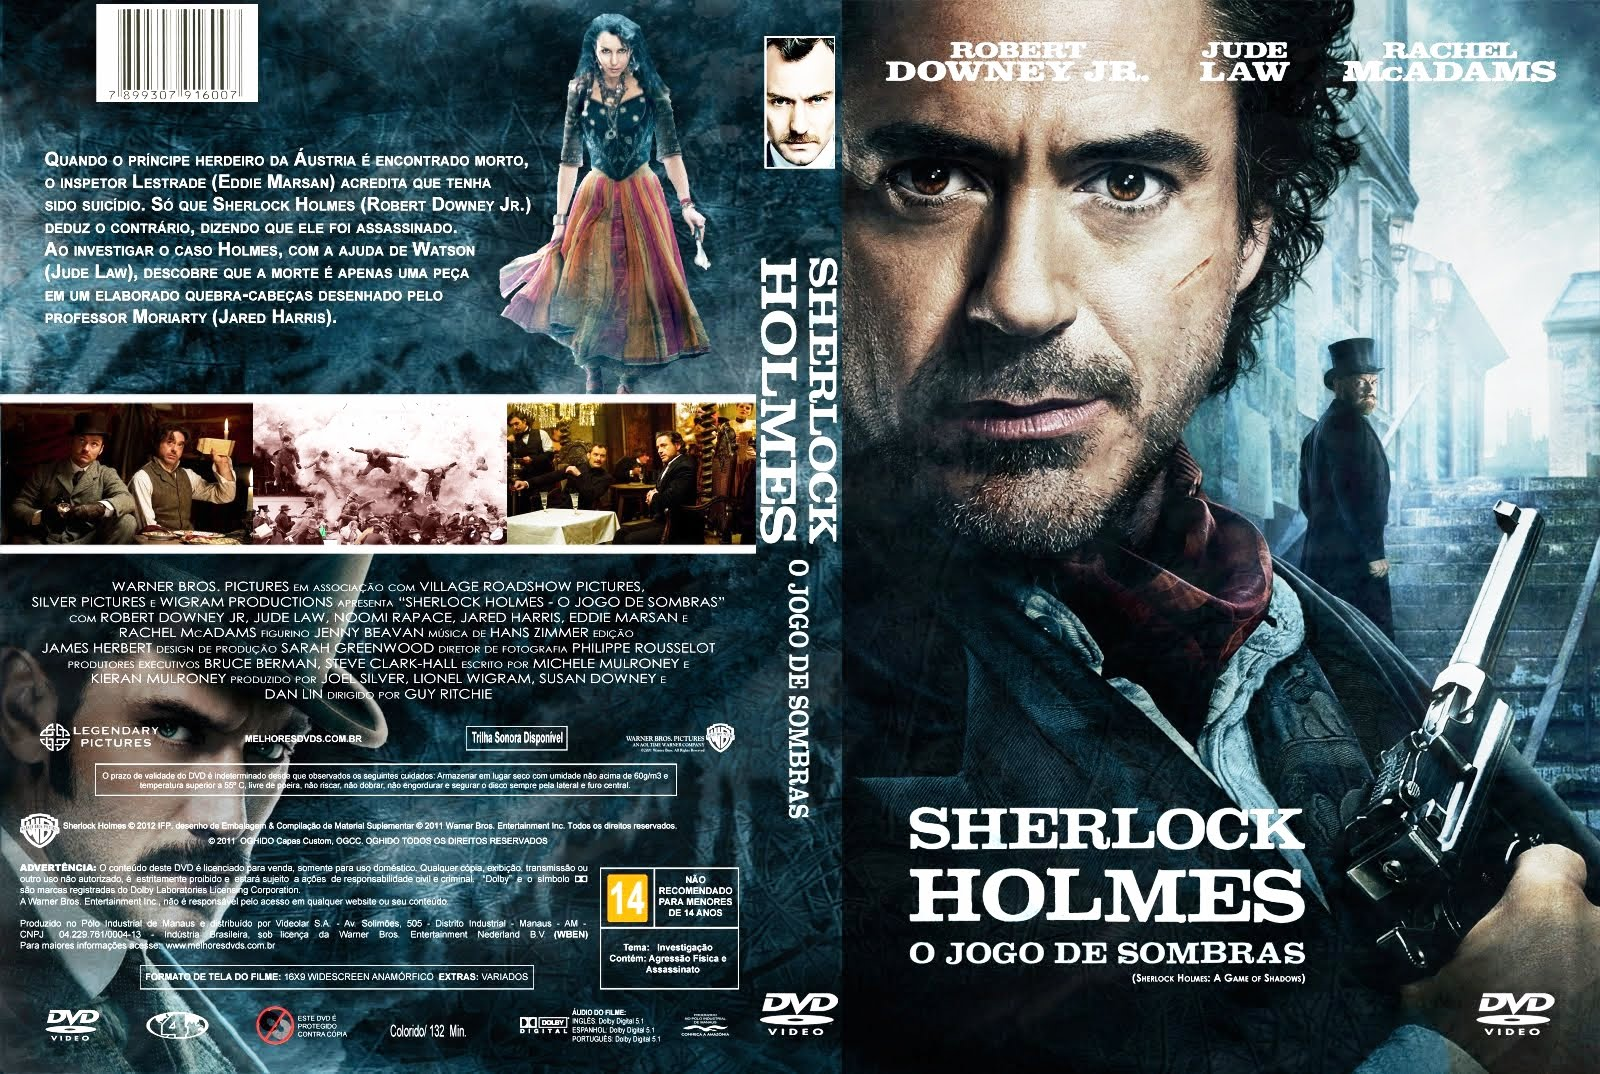 When Does Pbs Sherlock Holmes In 2013